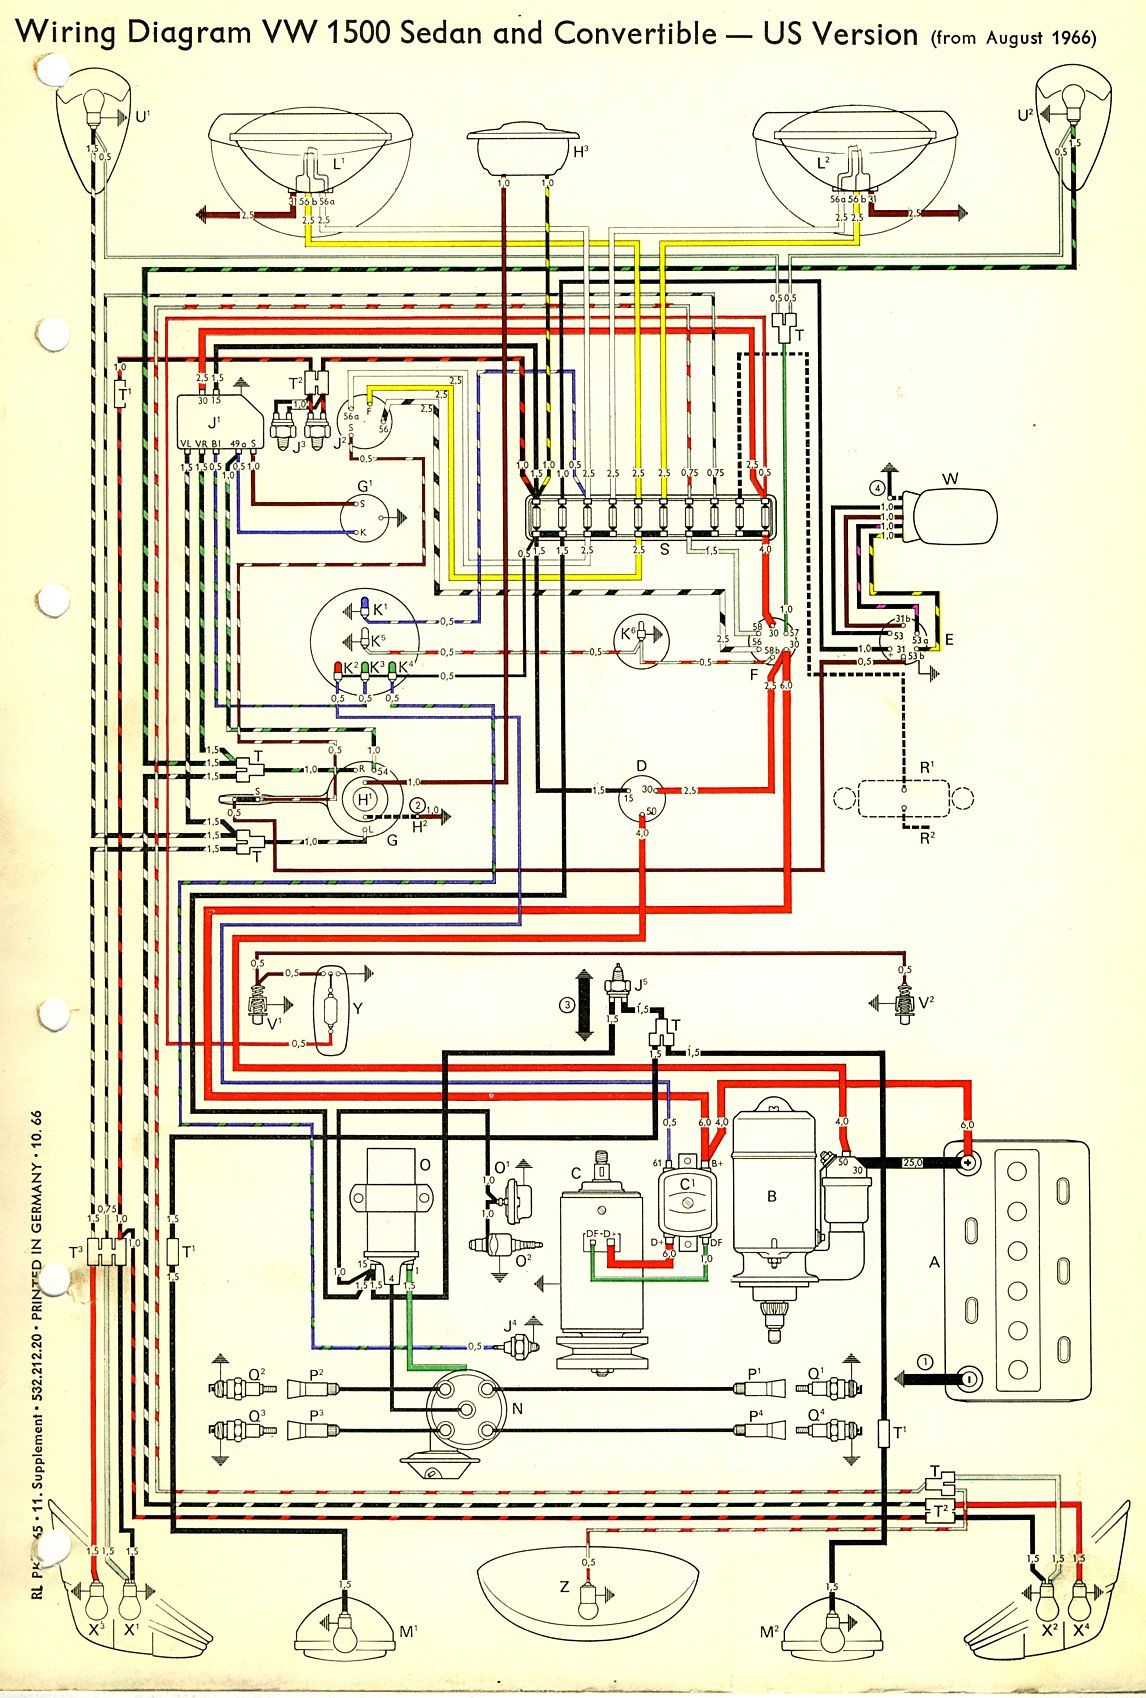 1adf990c0efb617c789fdd21338448b0 1967 beetle wiring diagram (usa) thegoldenbug com best 1967 vw vw beetle wiring diagram at virtualis.co